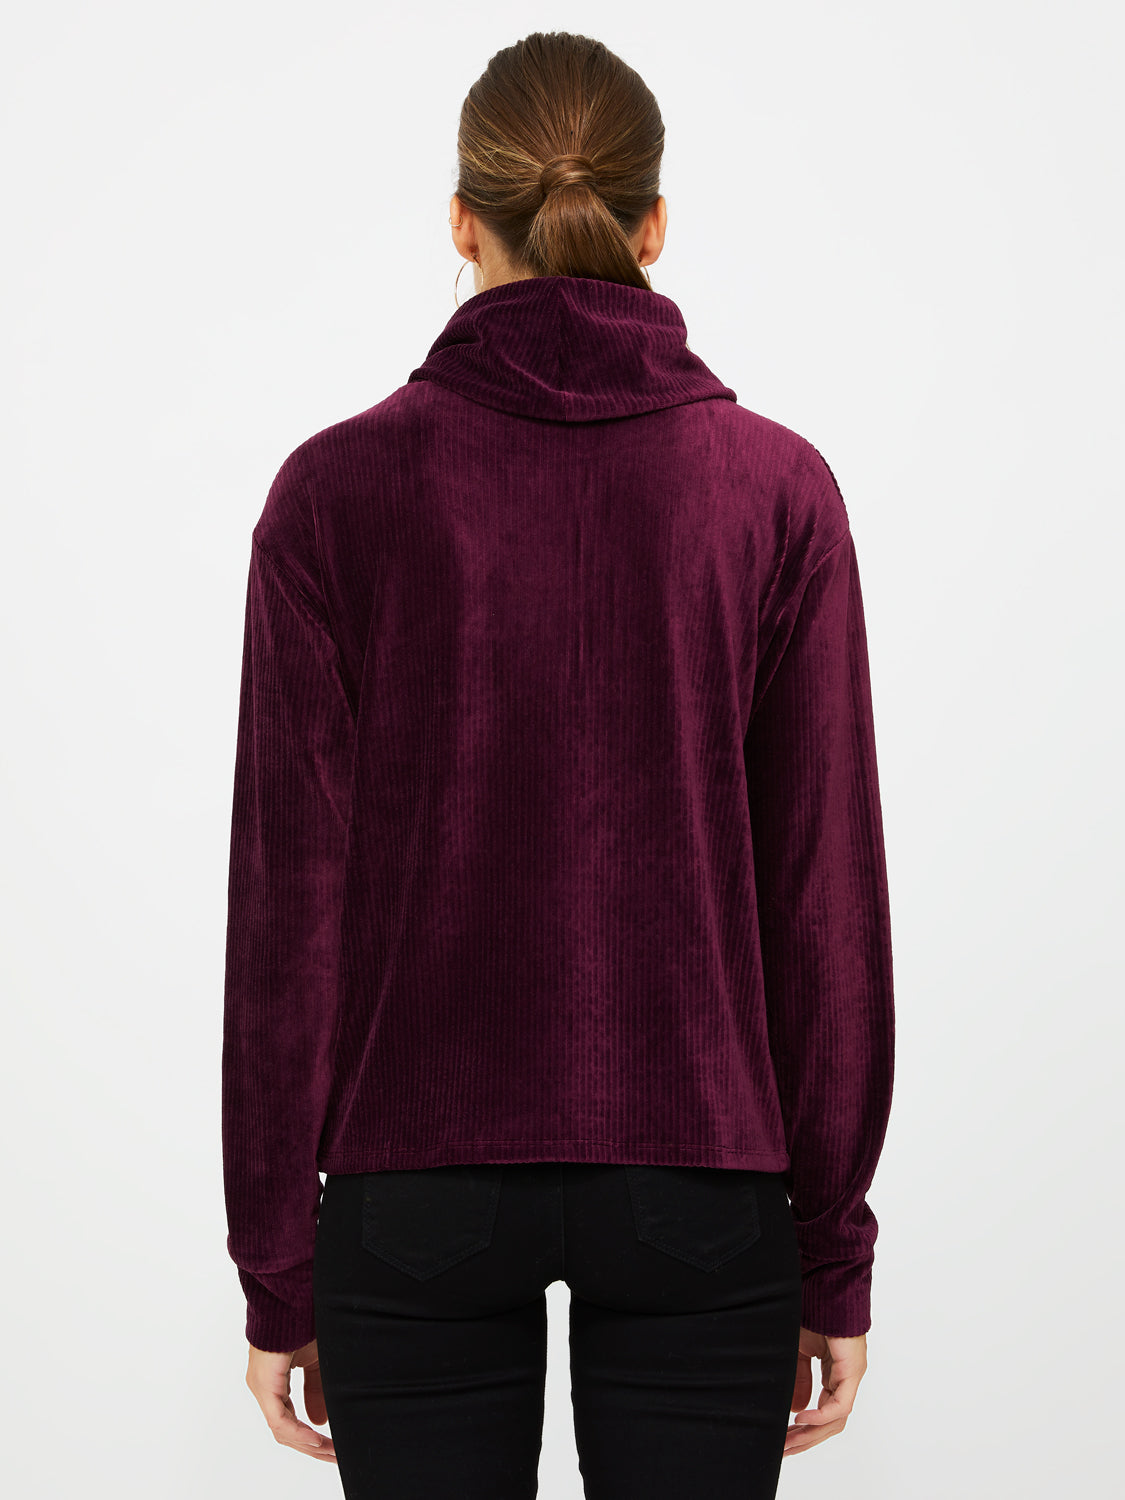 Long Sleeve Velour Corduroy Turtleneck